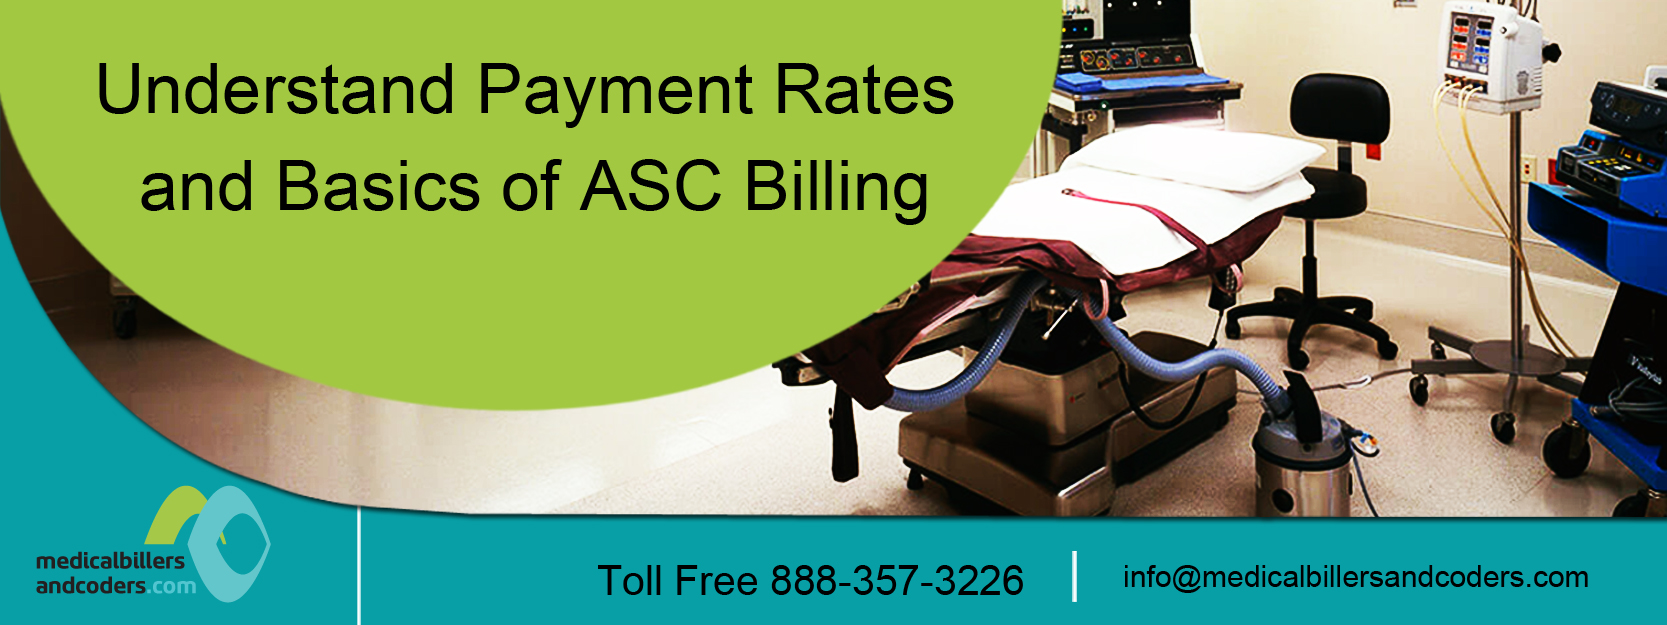 Understand Payment Rates and Basics of ASC Billing